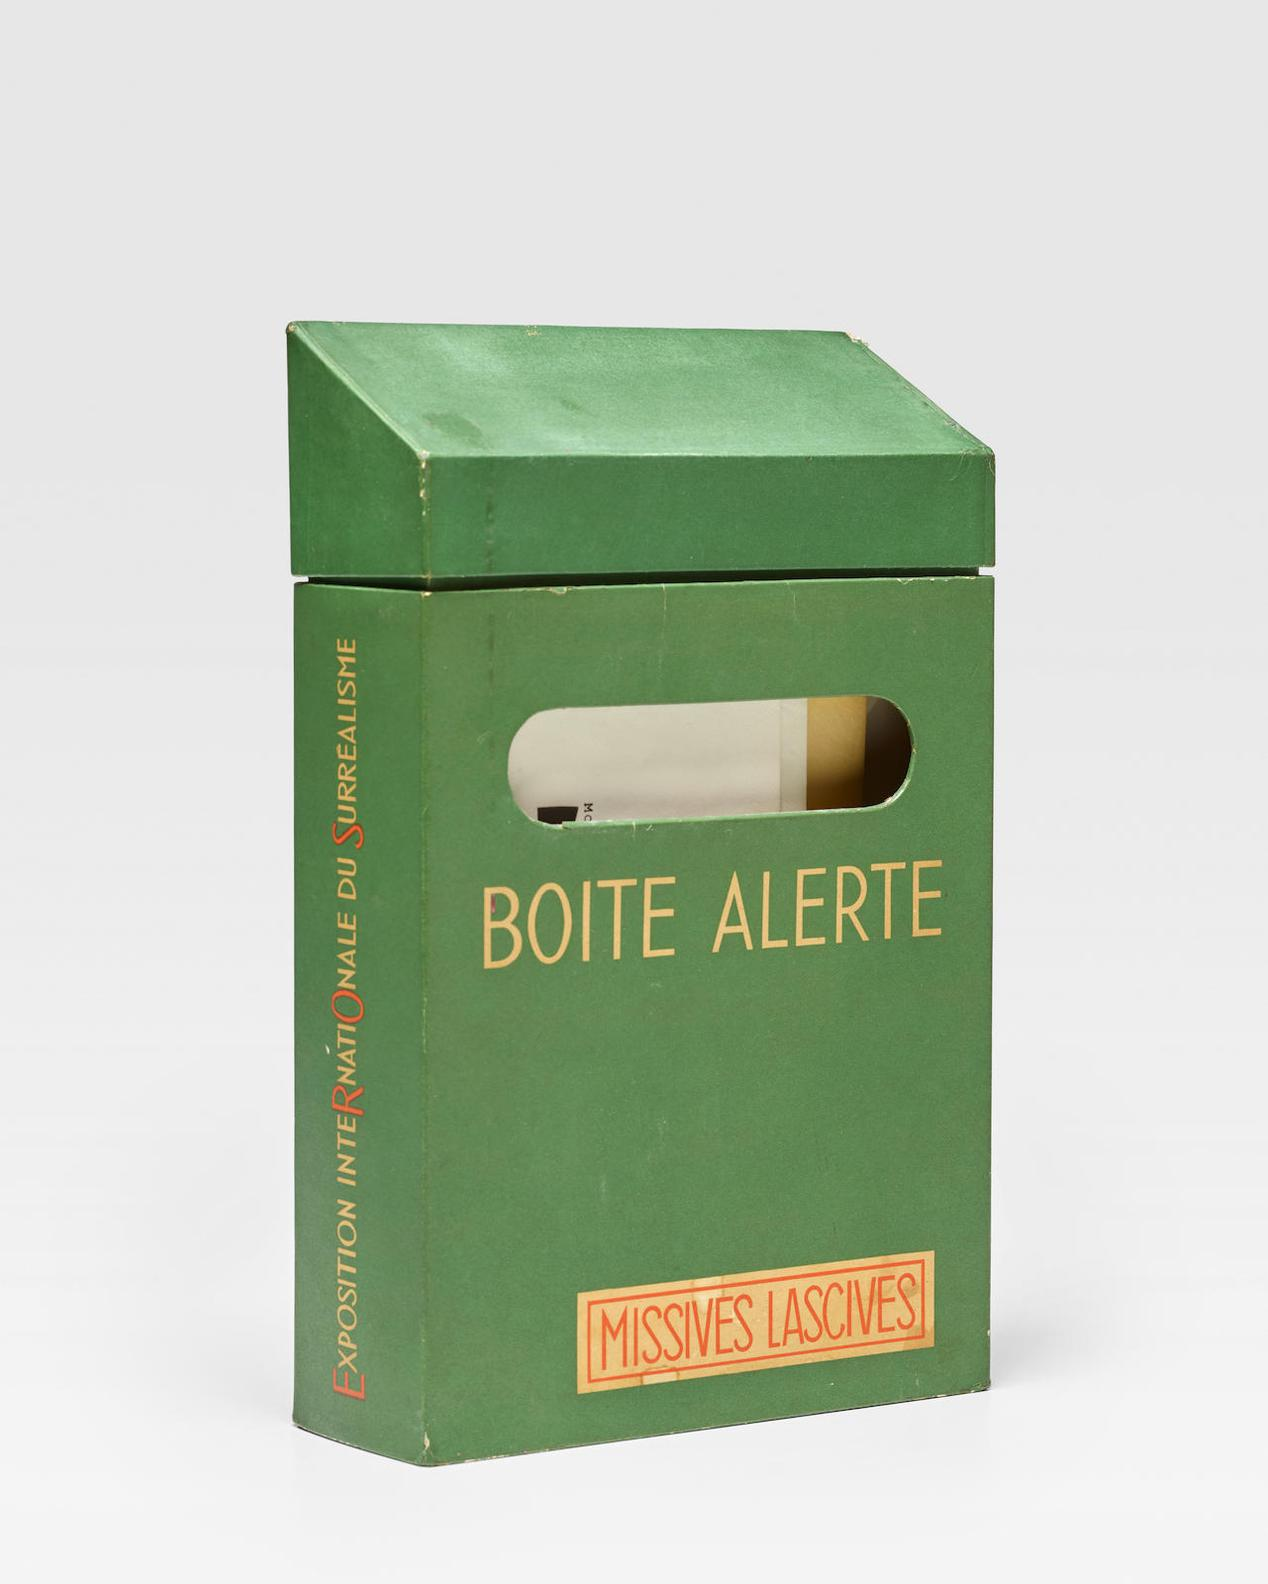 Marcel Duchamp-Boite Alerte, Missives Lascives: Exposition Internationale Du Surrealism (Eros) (See Schwartz 598-599)-1959